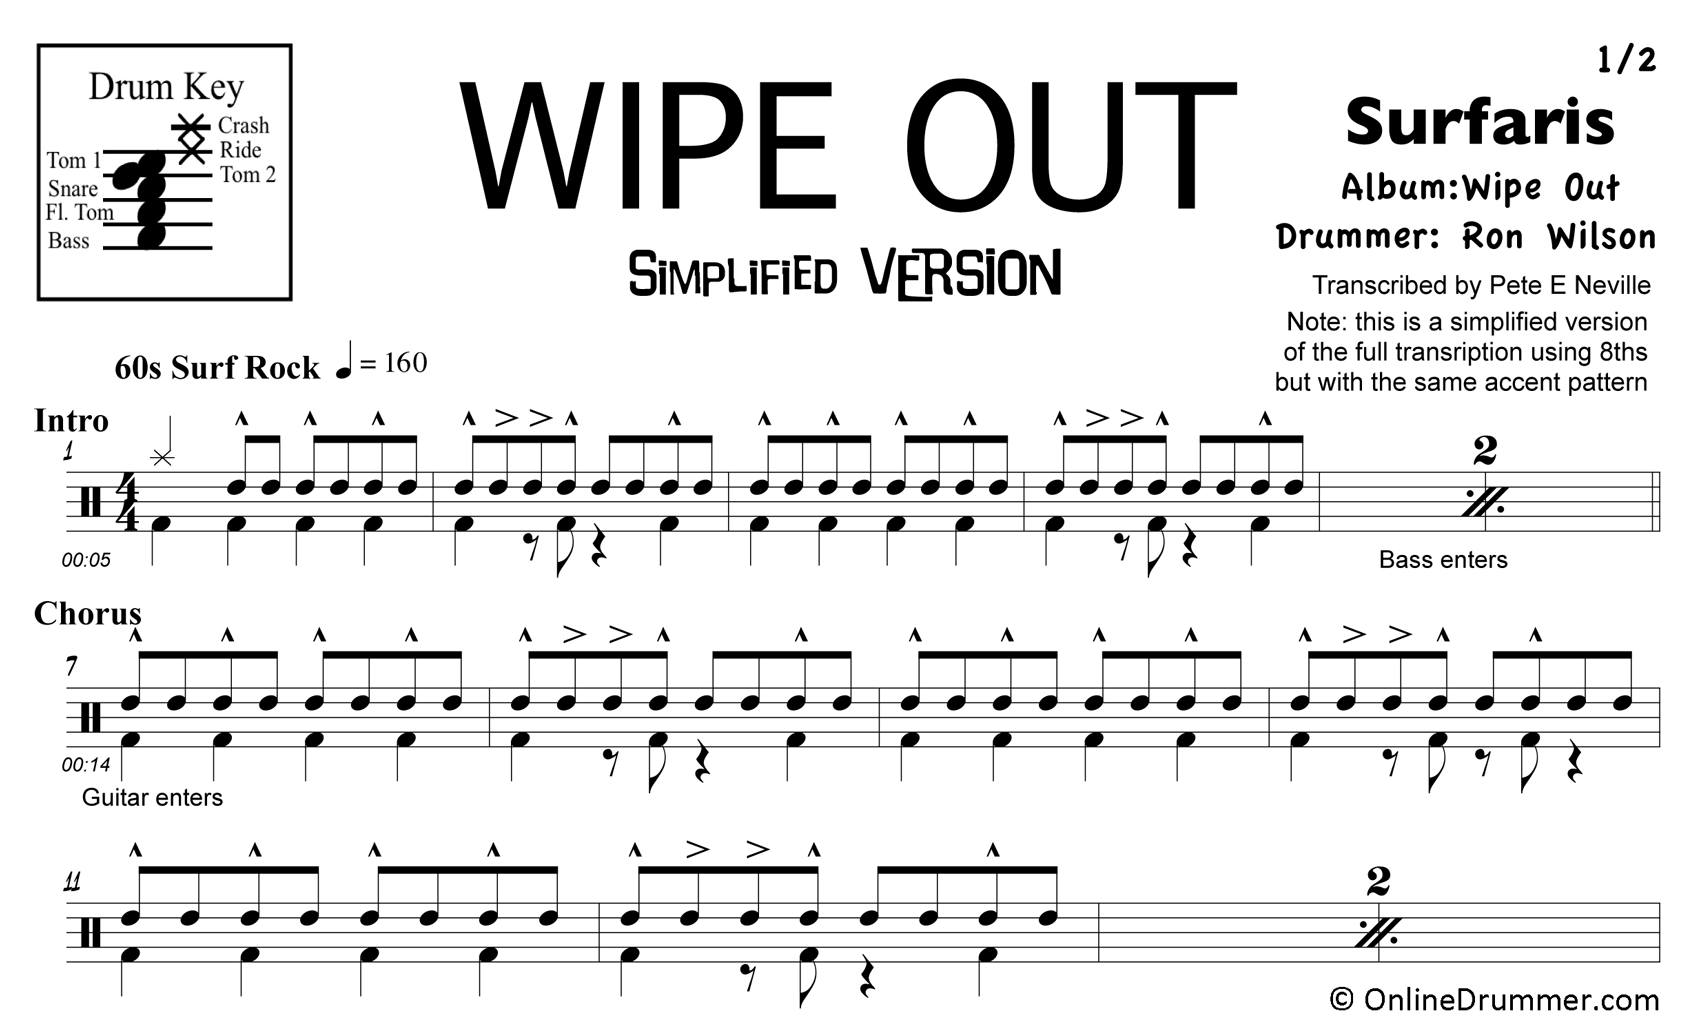 Wipe Out - Drums - Simplified